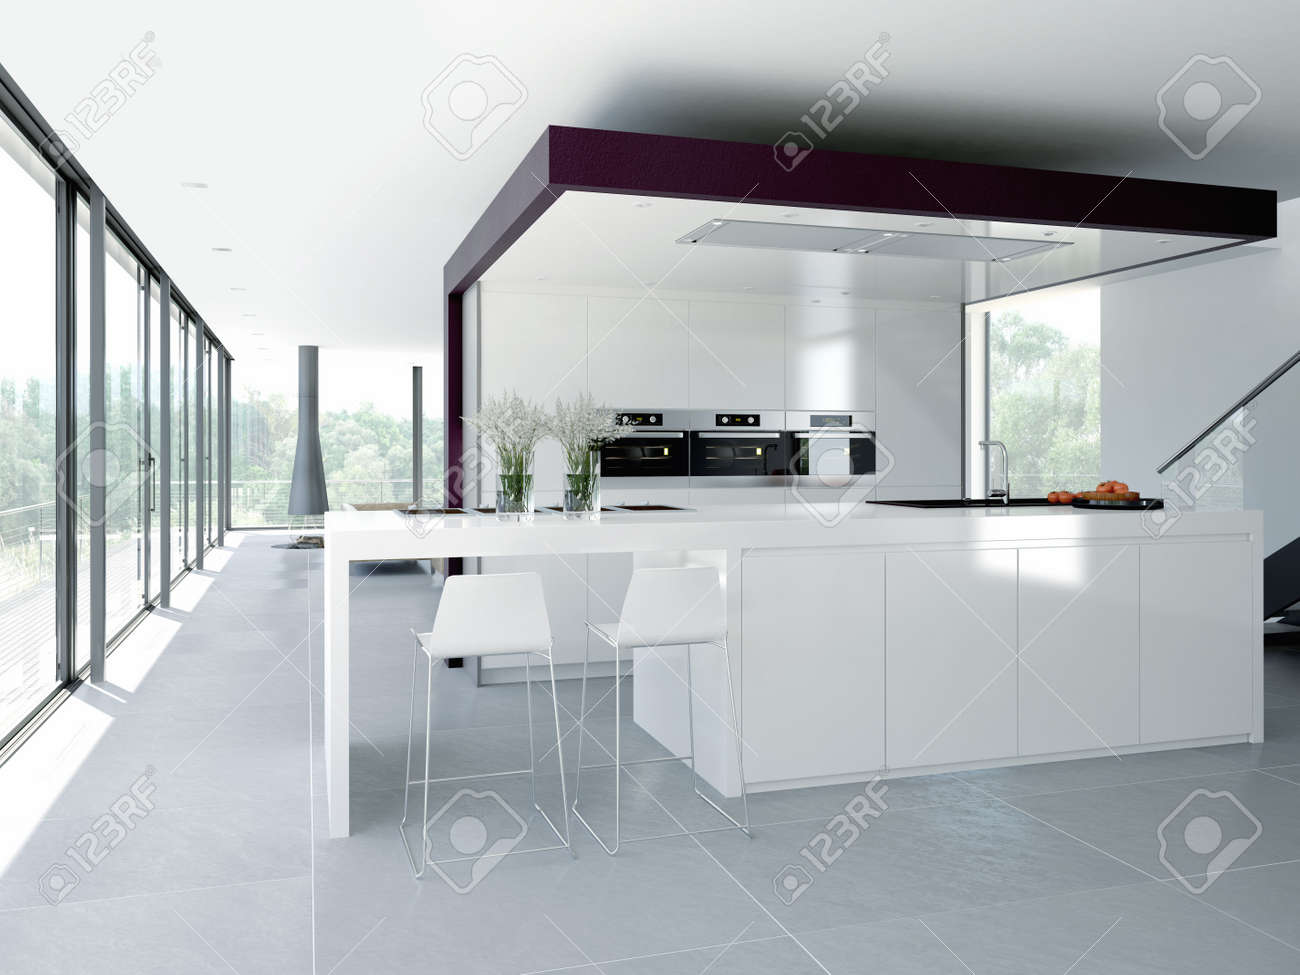 A Clean Modern Kitchen Interior. Design Concept Stock Photo, Picture ...